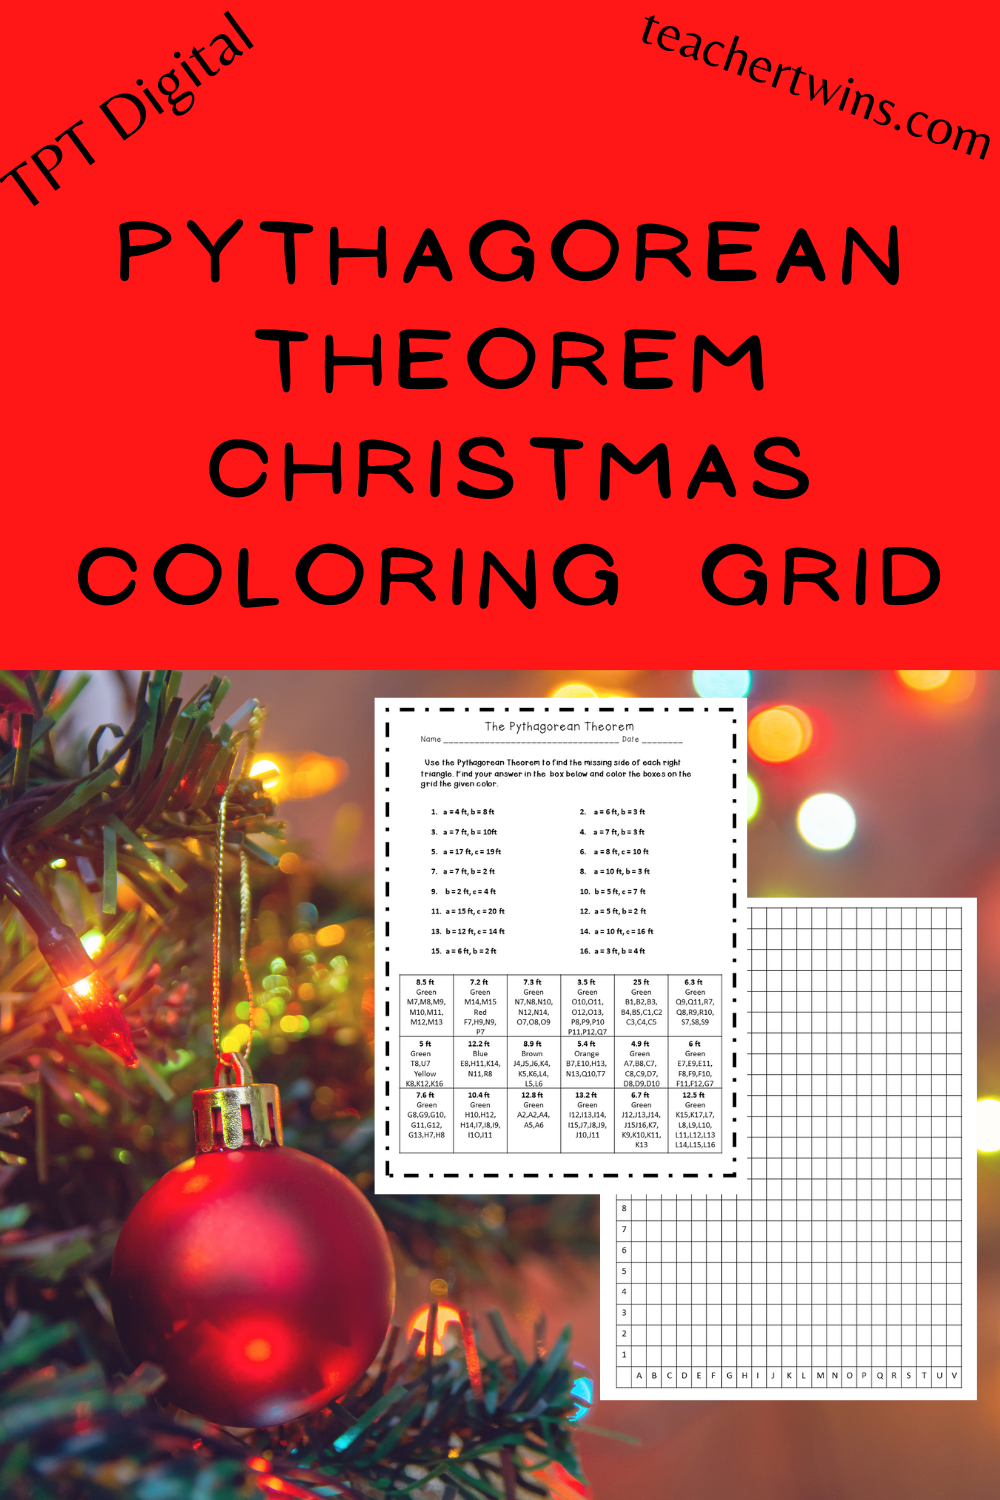 The Pythagorean Theorem Coloring Grid Sheet In 2020 Pre Algebra Activities Christmas Math Middle School Middle School Geometry Activities